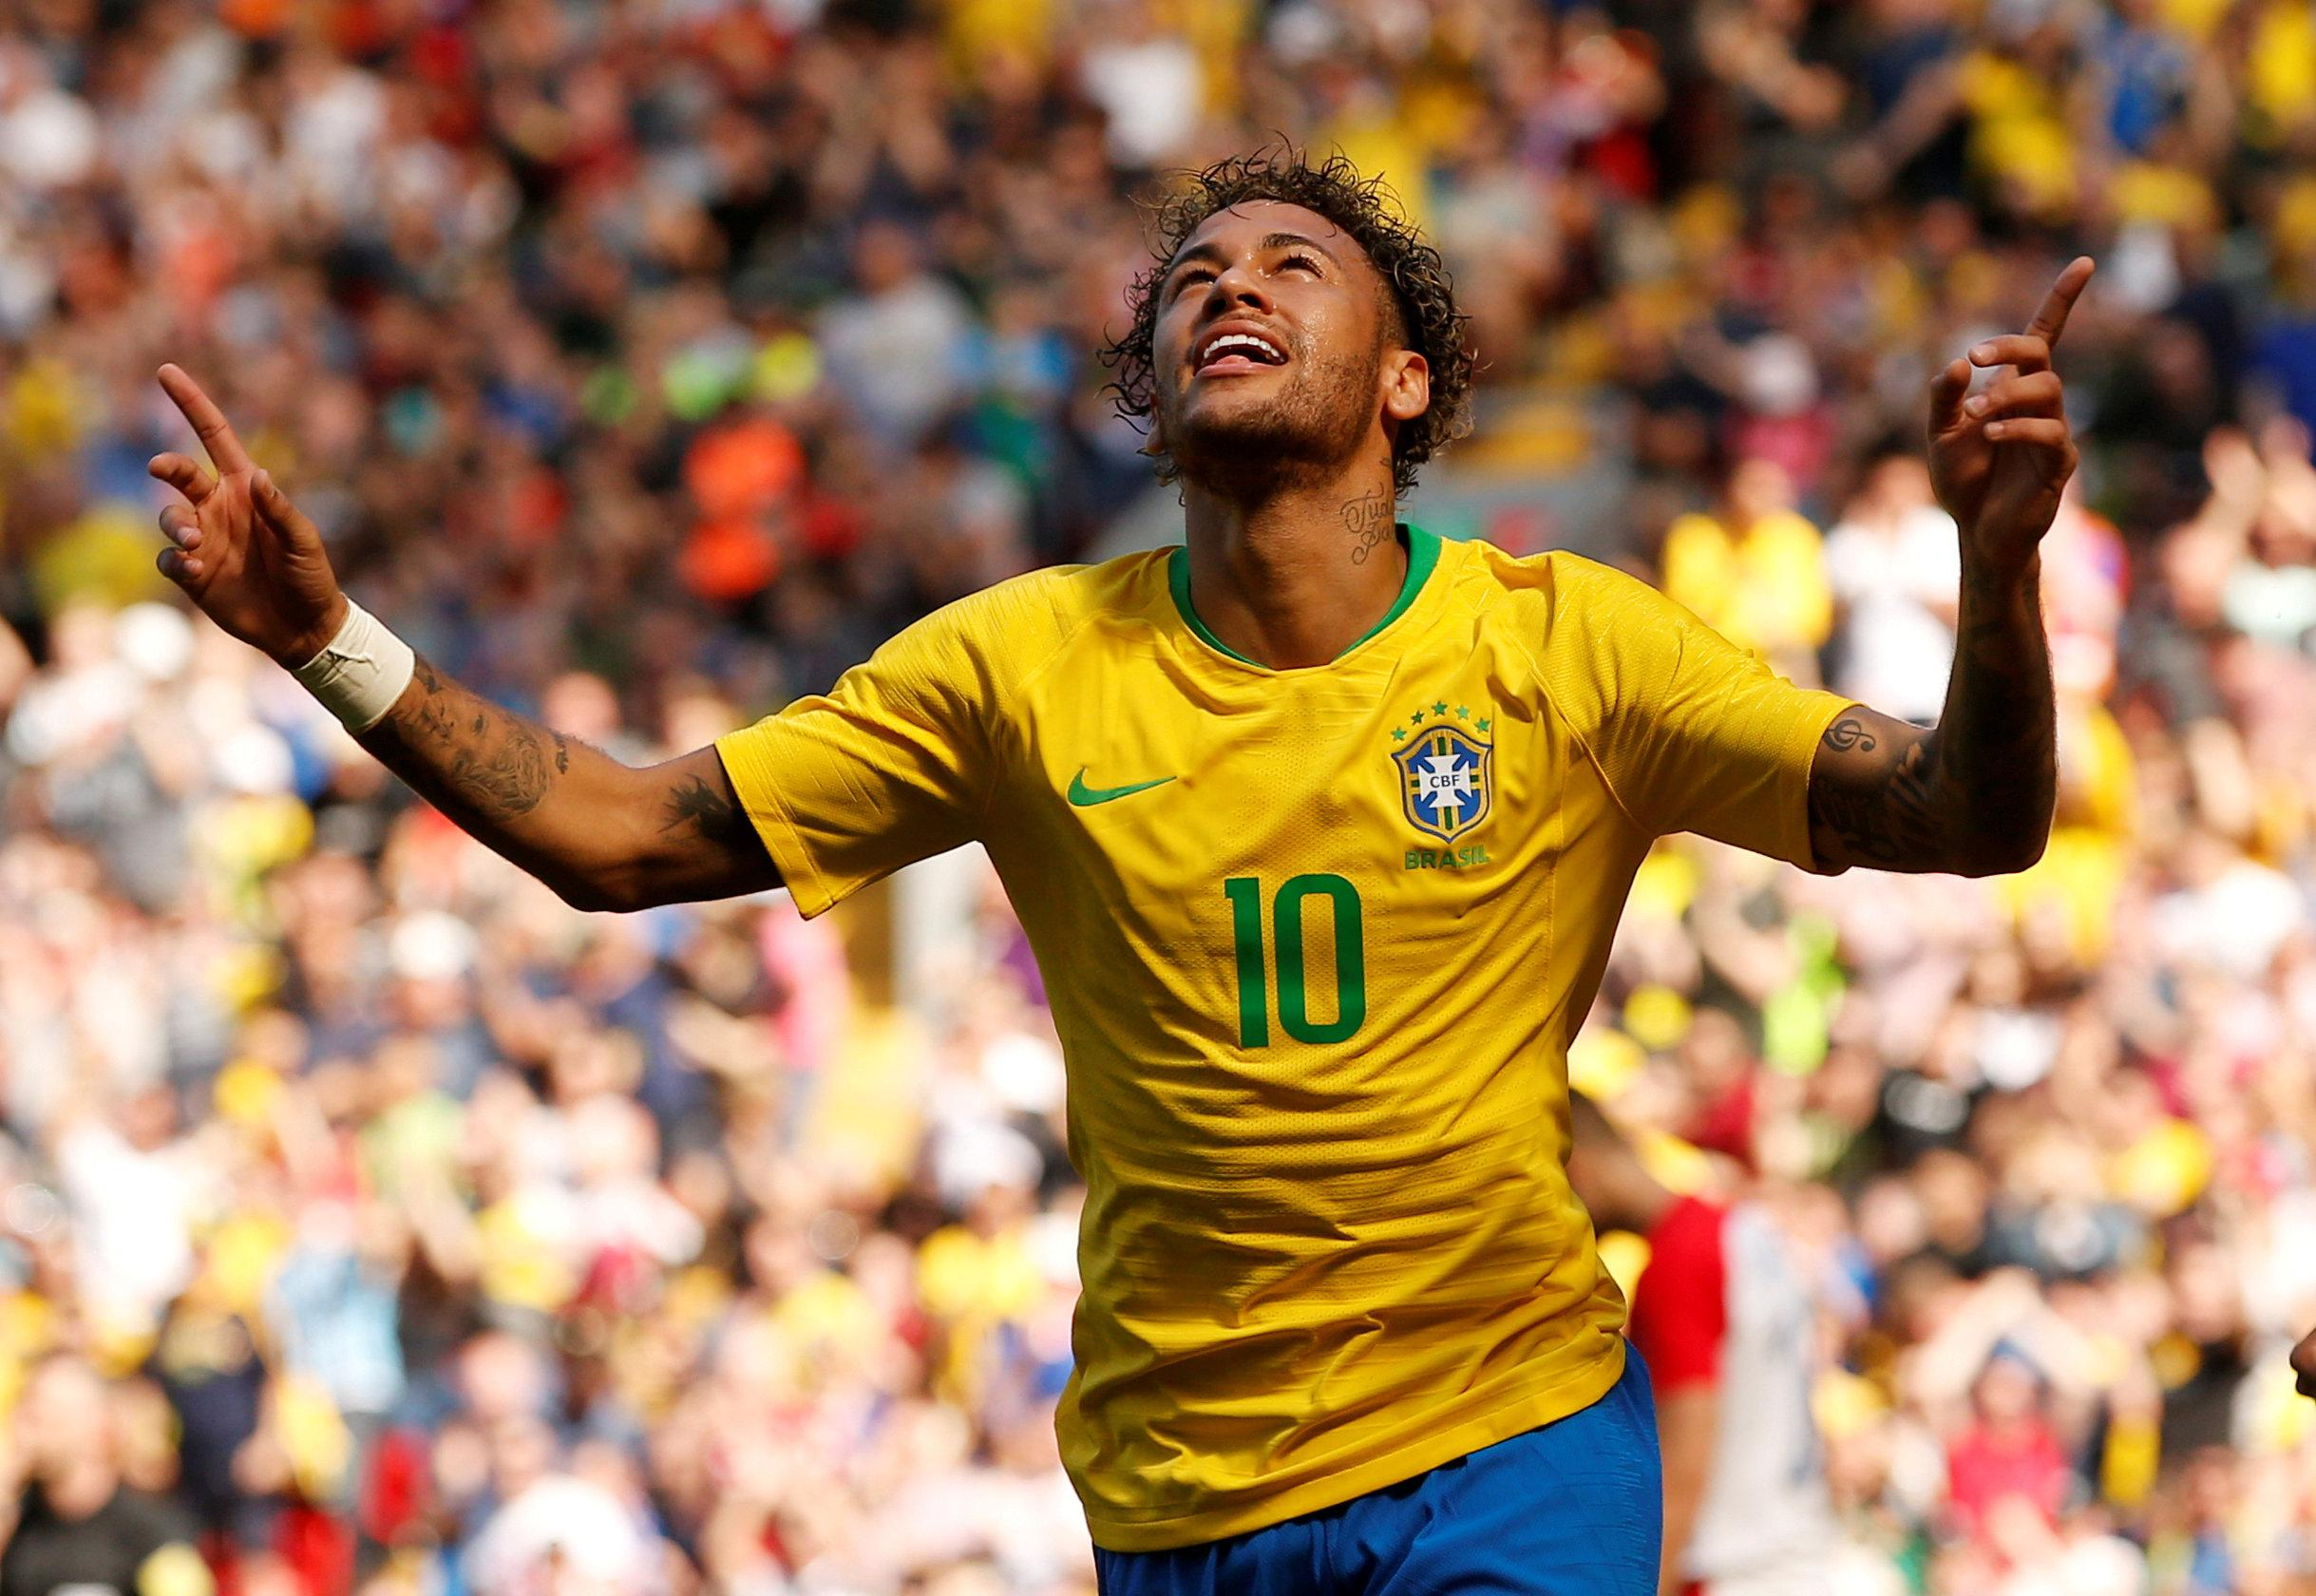 Neymar scored a wonder goal on Sunday in his return from injury